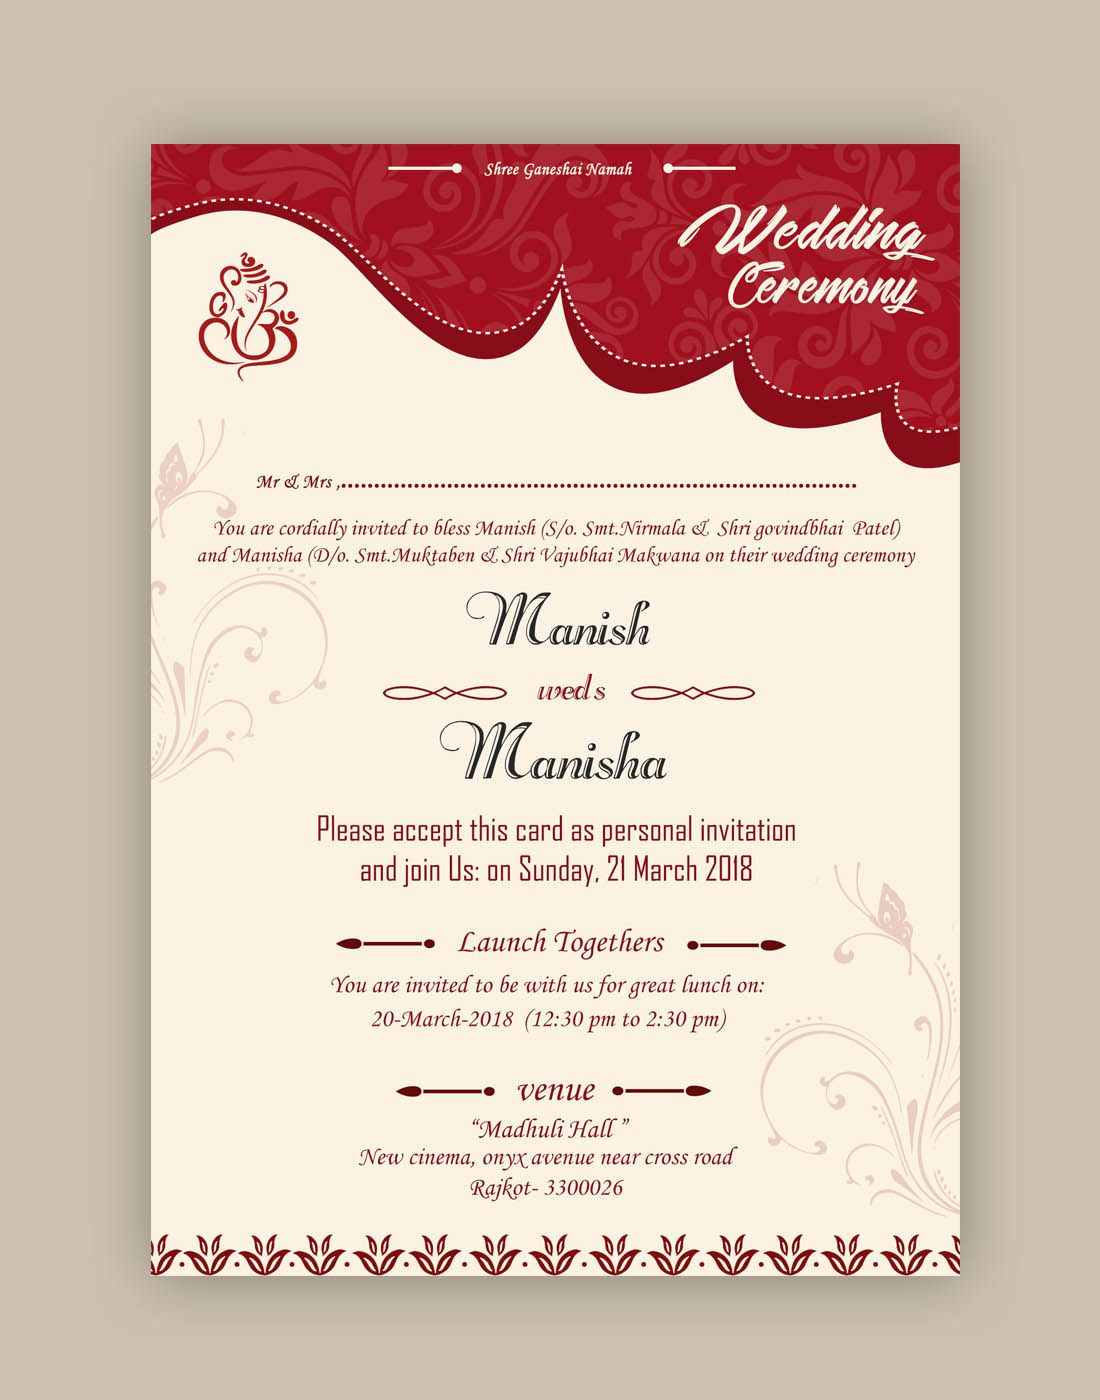 free wedding card psd templates  Marriage invitation card, Free